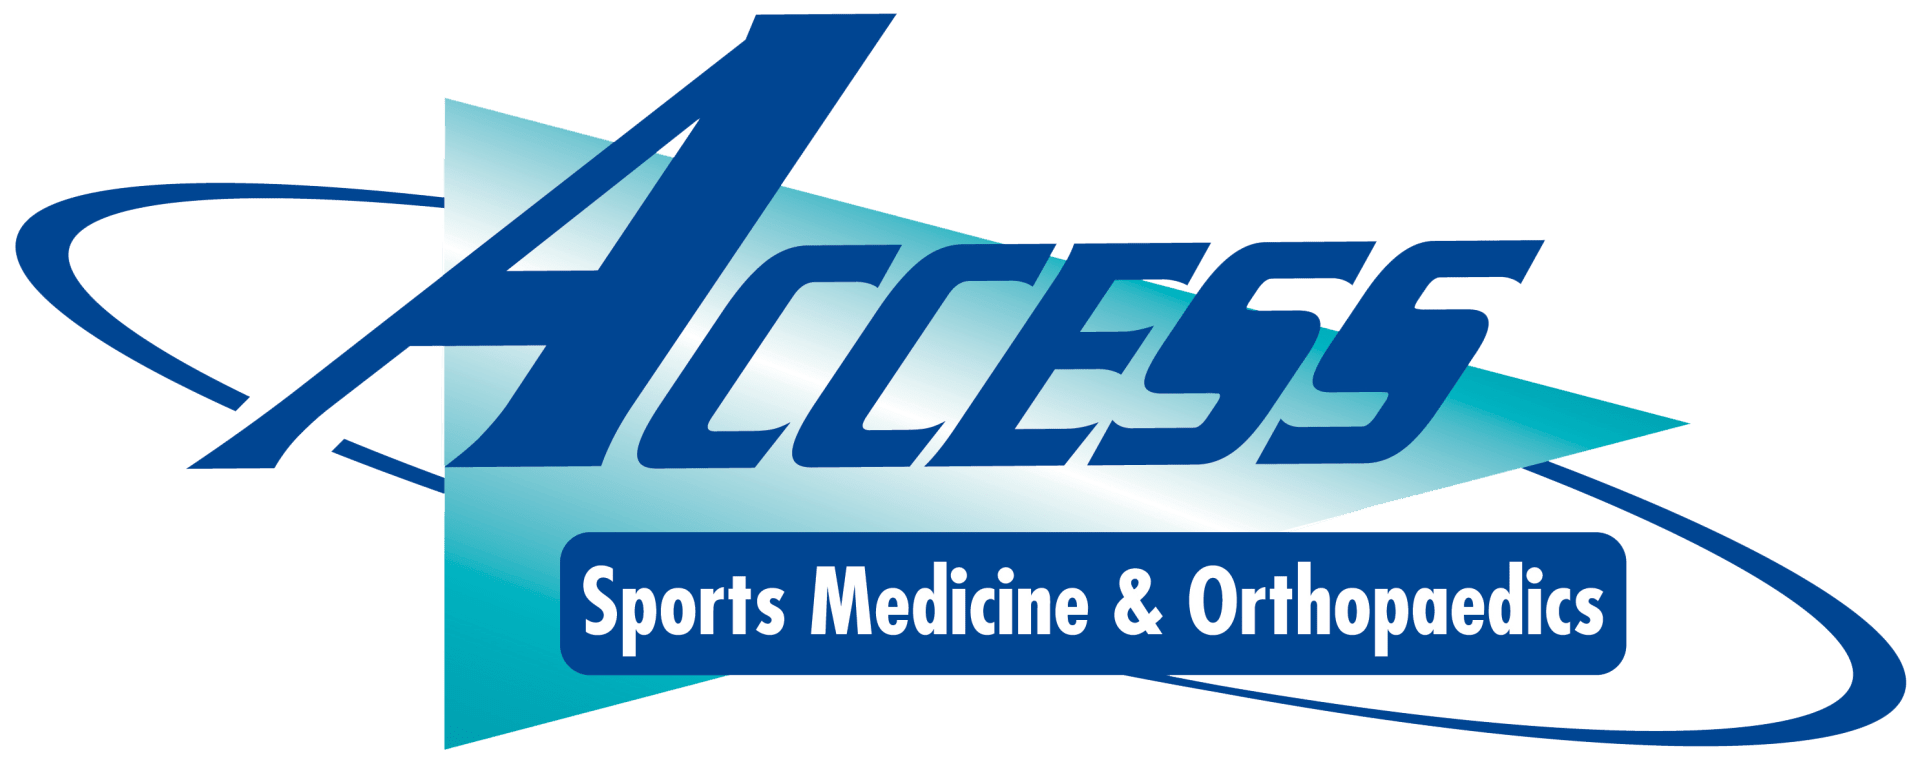 access-logo-large-transparent-w1920.png